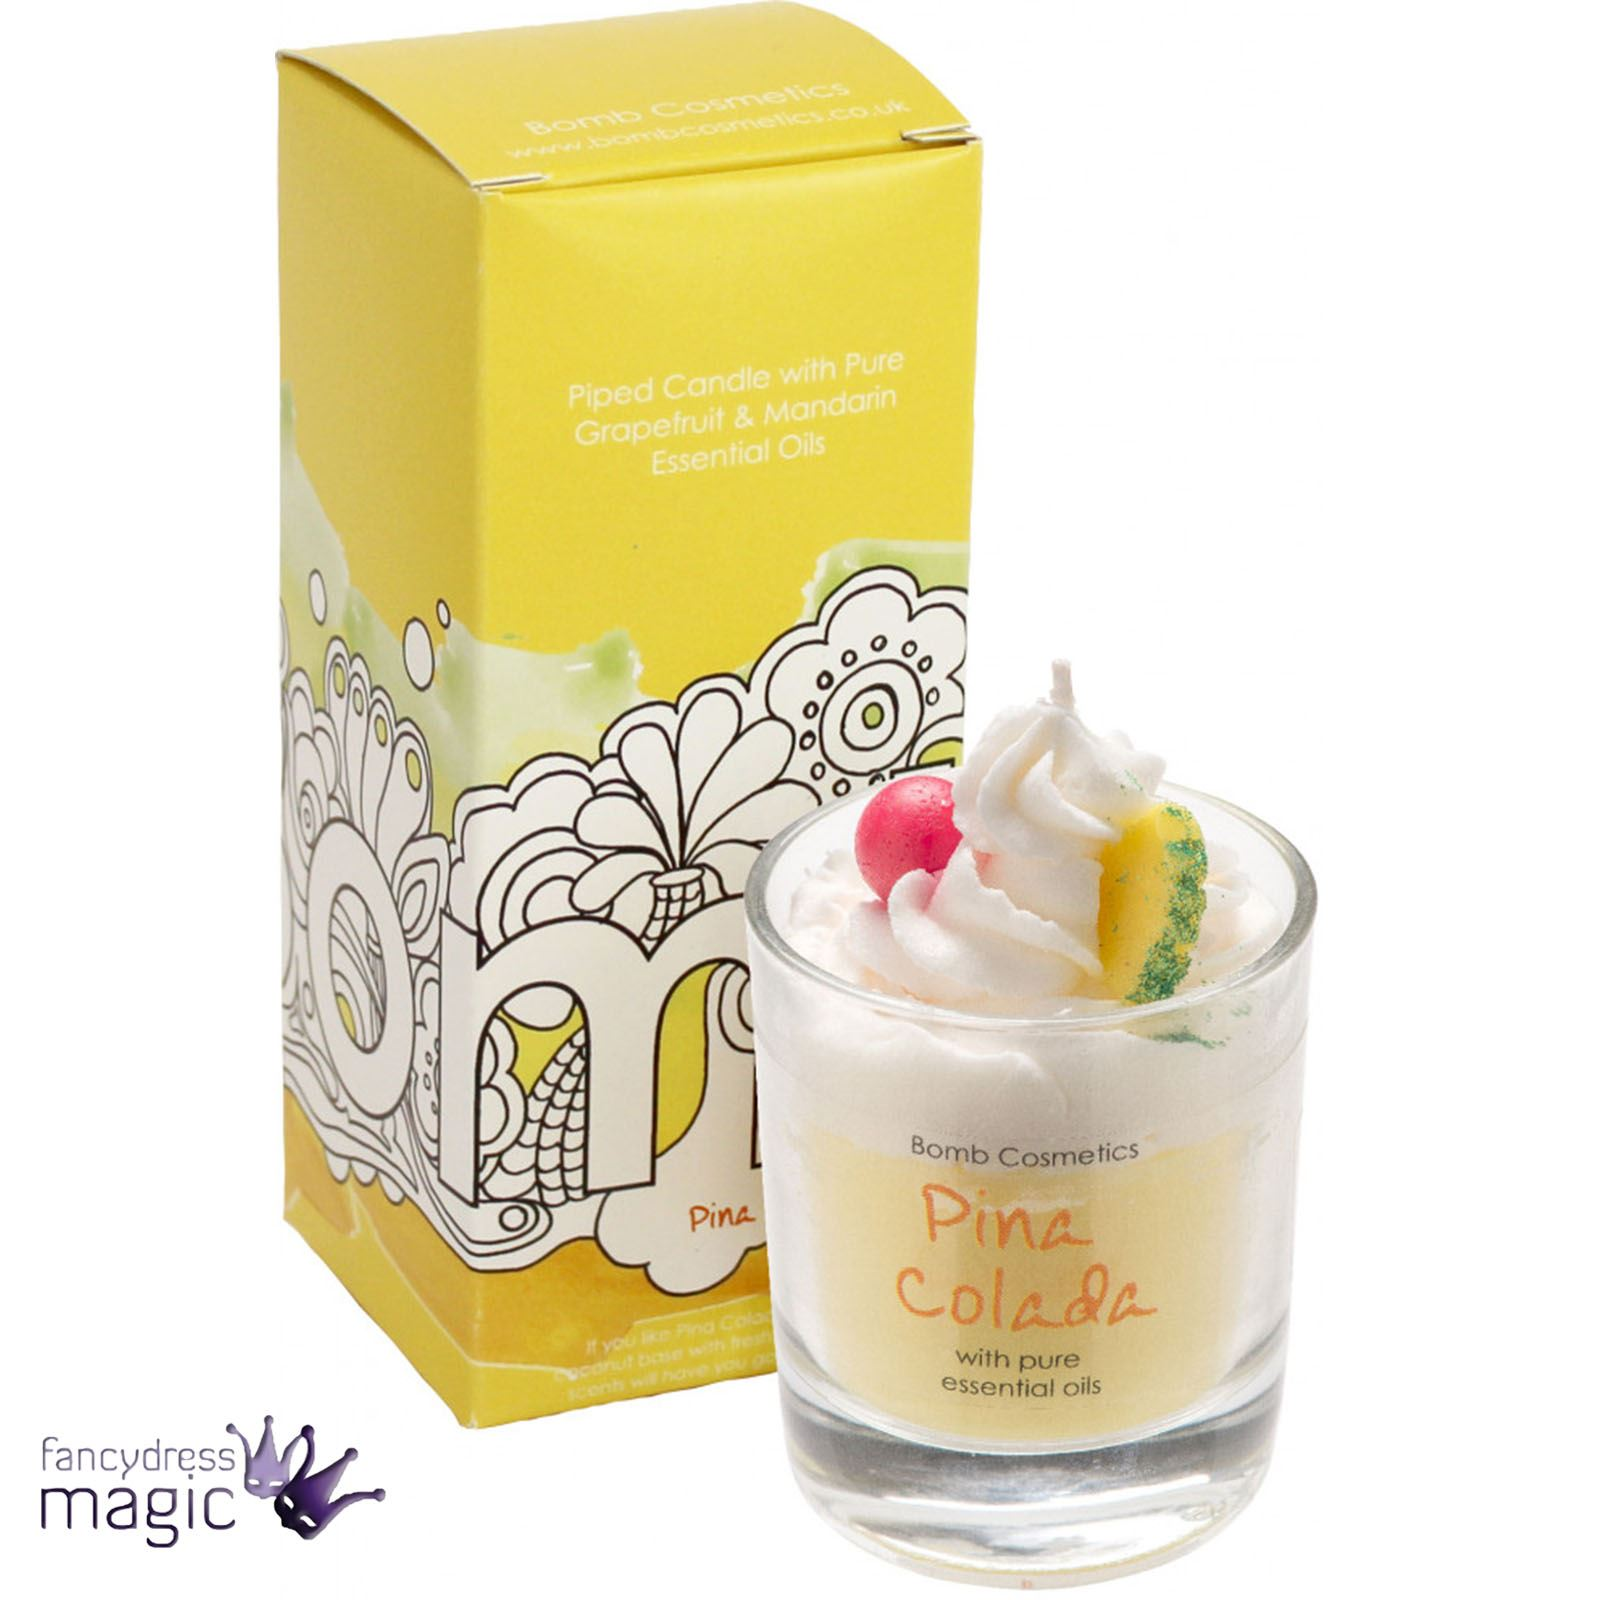 Bomb-Cosmetics-Handmade-Piped-Glass-Candle-Vegan-Pure-Essential-Oils-Boxed-Gift thumbnail 23